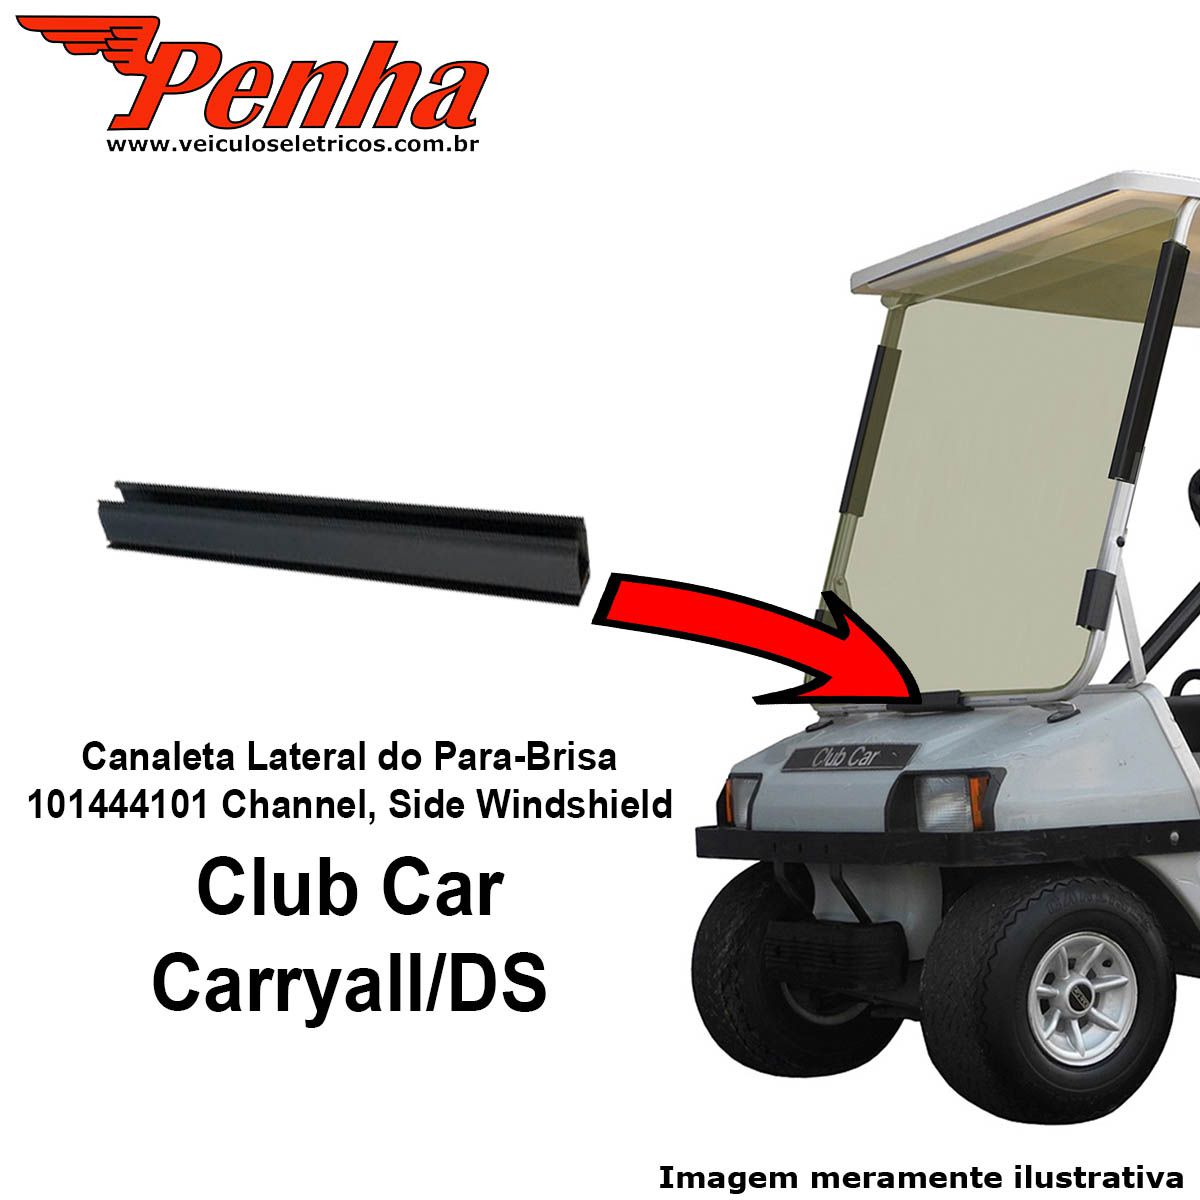 Canaleta inferior do Para-brisa para veiculo elétrico Club Car Carryall